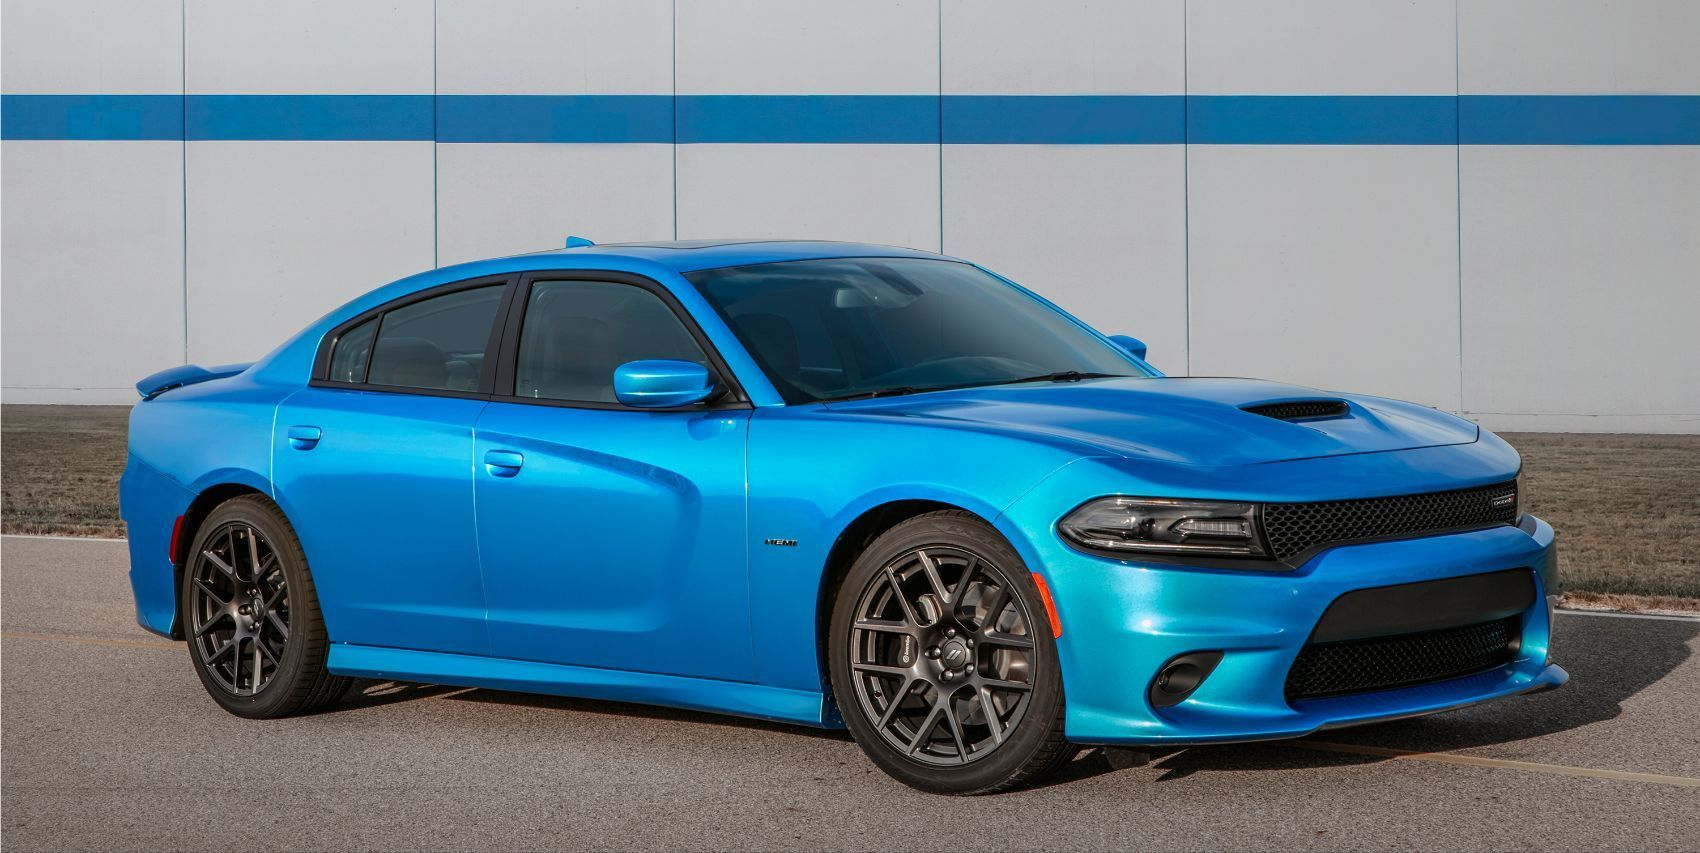 2020 Dodge Charger Widebody New Release For 2020 Dodge Charger Widebody Review Specs And Release Date In 2020 Dodge Charger Dodge Charger Sxt Dodge Challenger Srt Hellcat